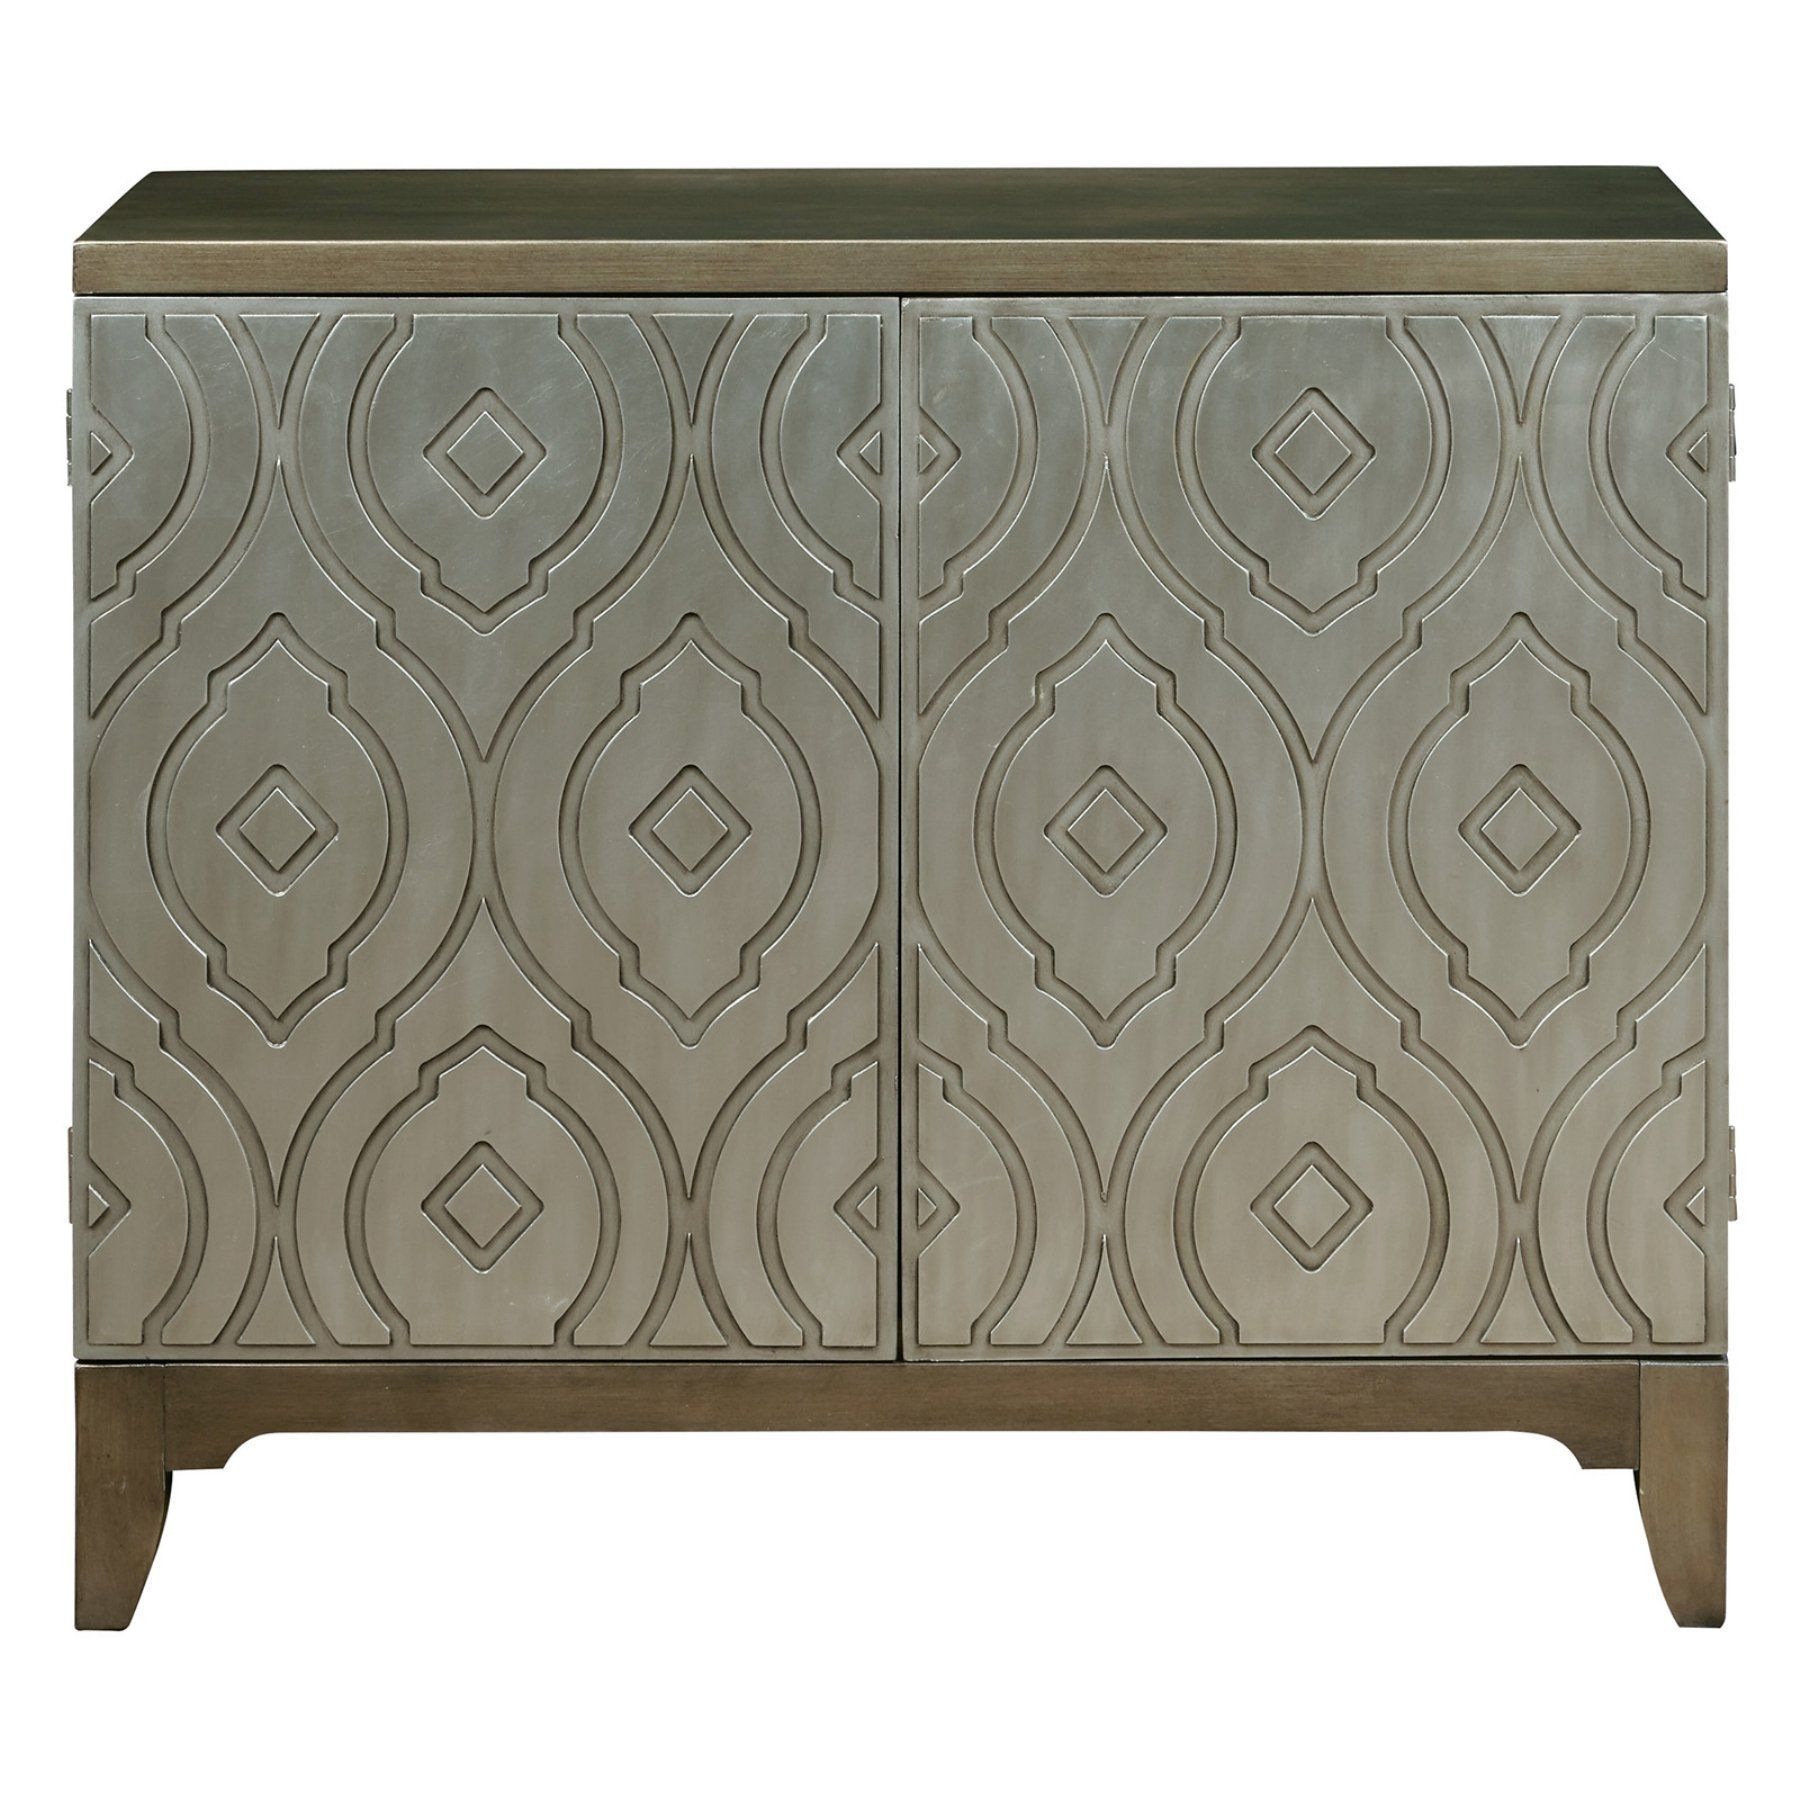 Home Meridian Imperial Metallic Bar Cabinet - Ds-P050122 pertaining to Lainey Credenzas (Image 11 of 30)